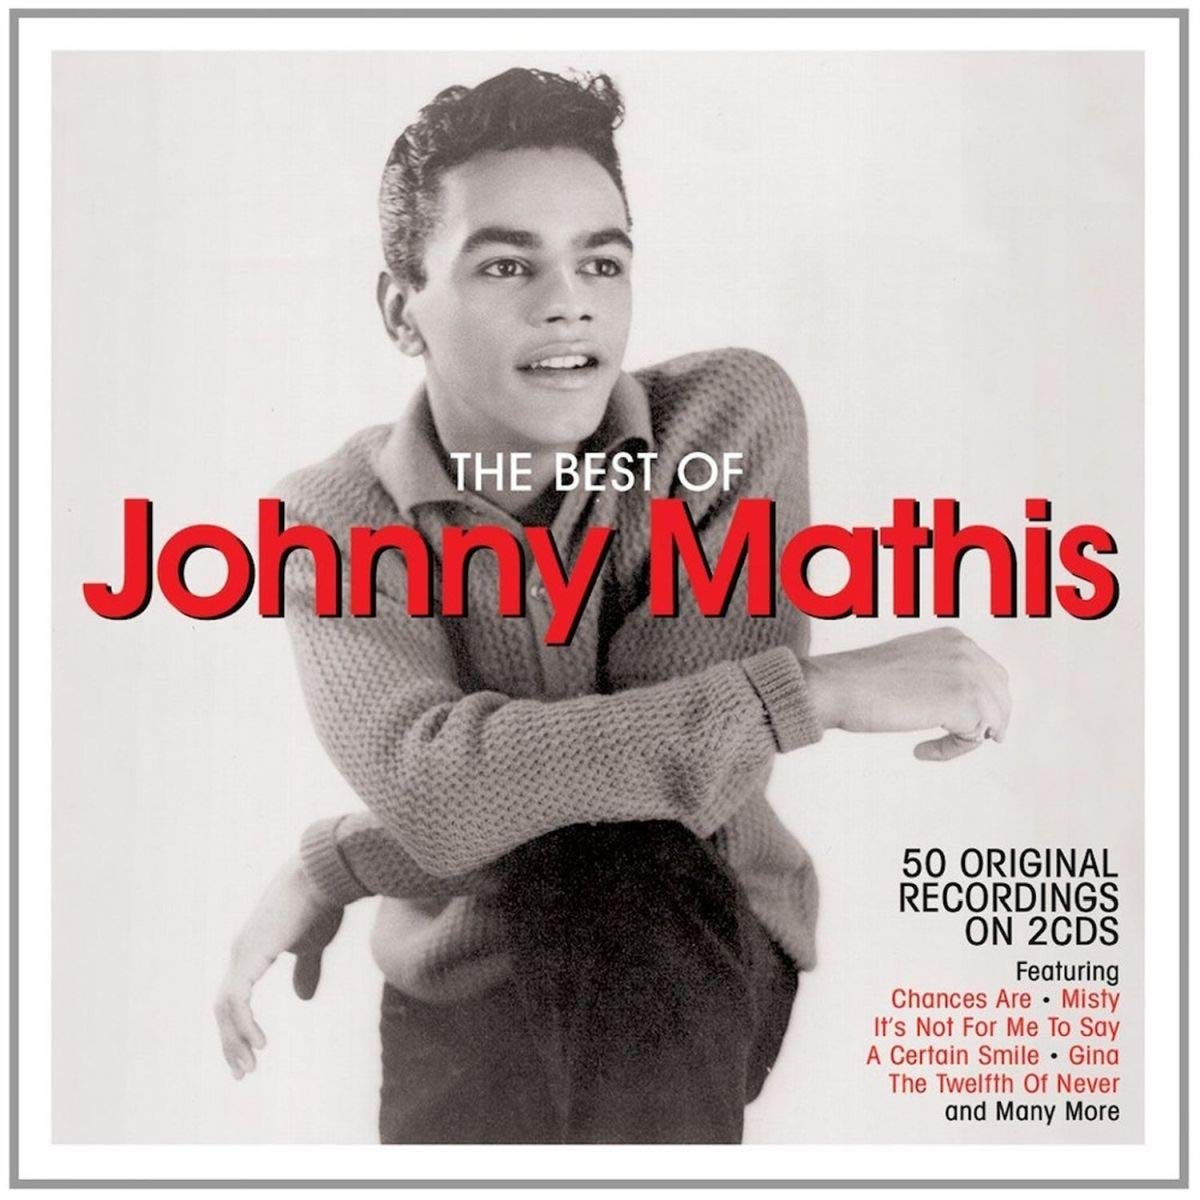 JOHNNY MATHIS: Best Of (2 CDs)